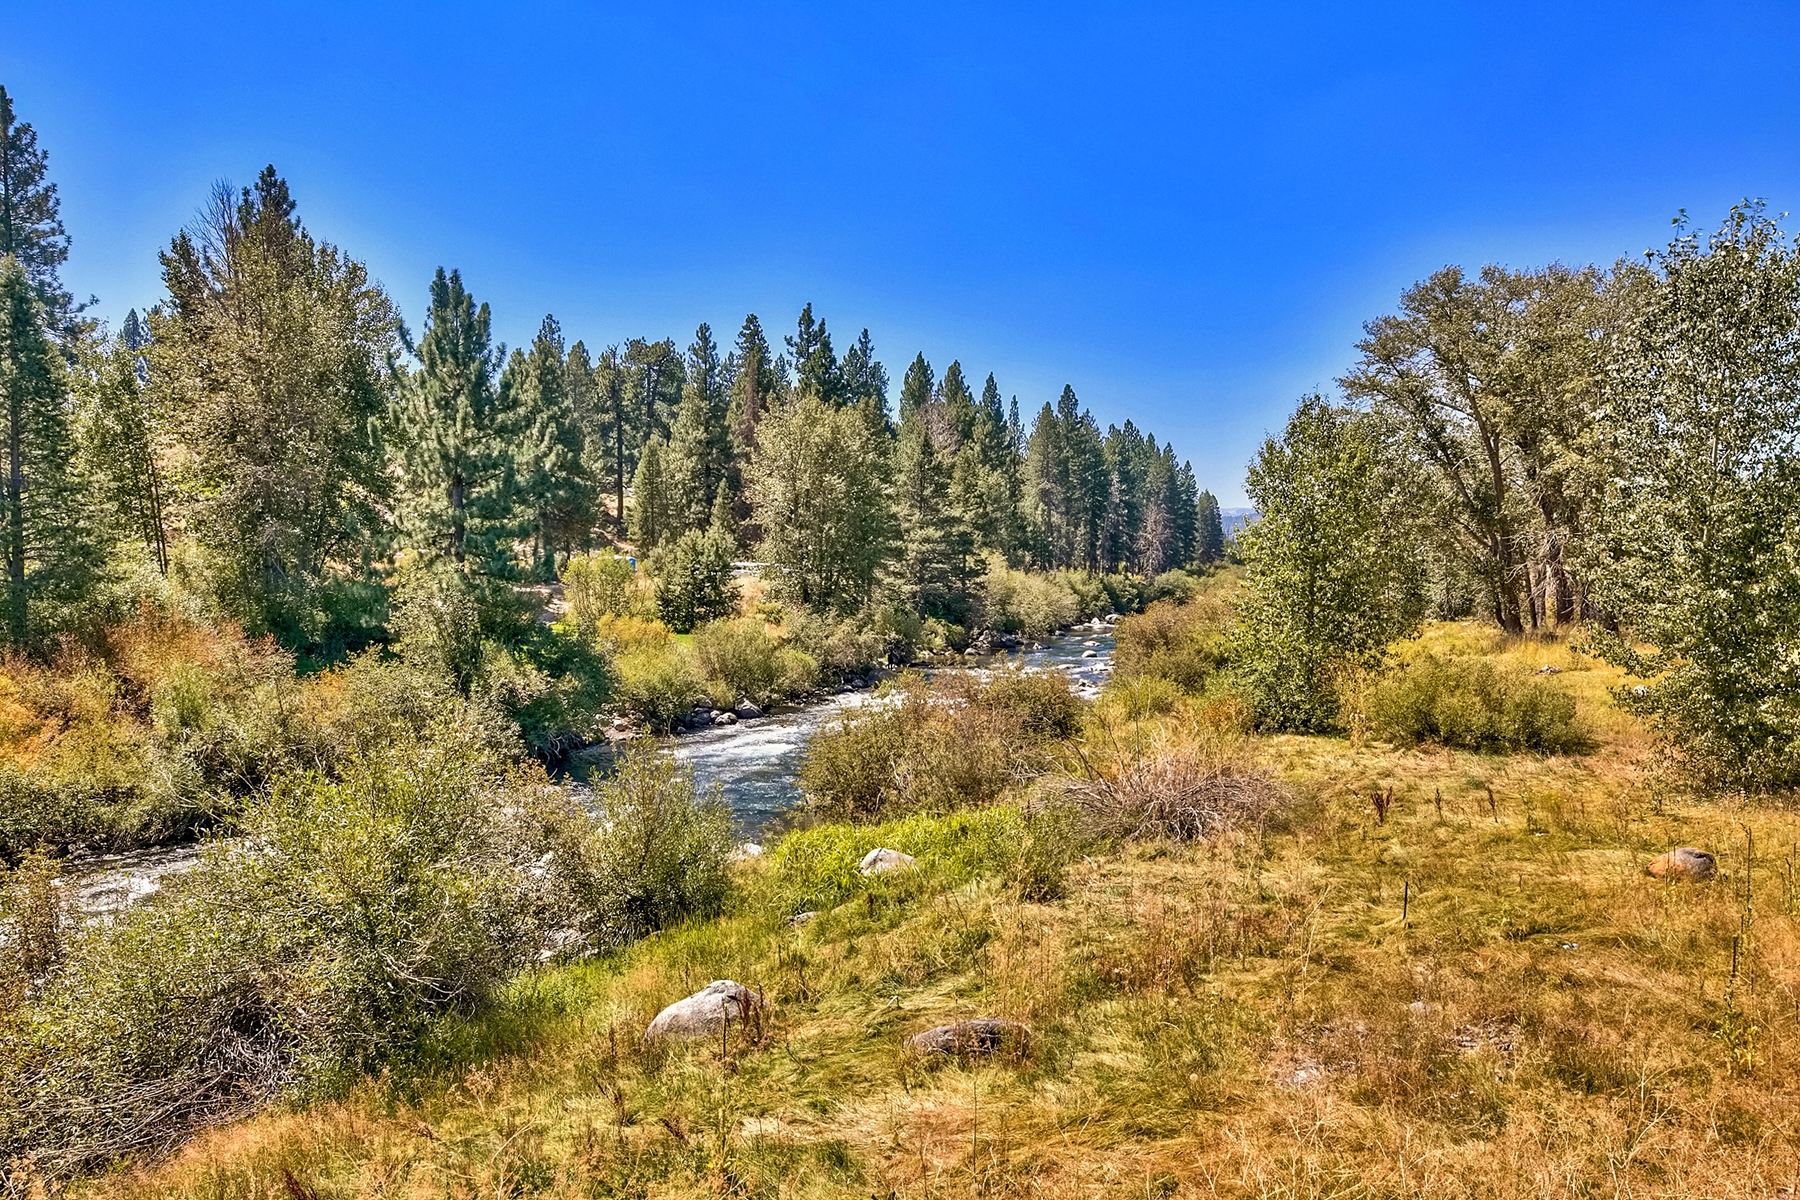 Additional photo for property listing at 10419 and 10477-10531 East River Street, Truckee, Ca 96161 10419 and 10477-10531 East River Street River's Edge Truckee, California 96161 United States